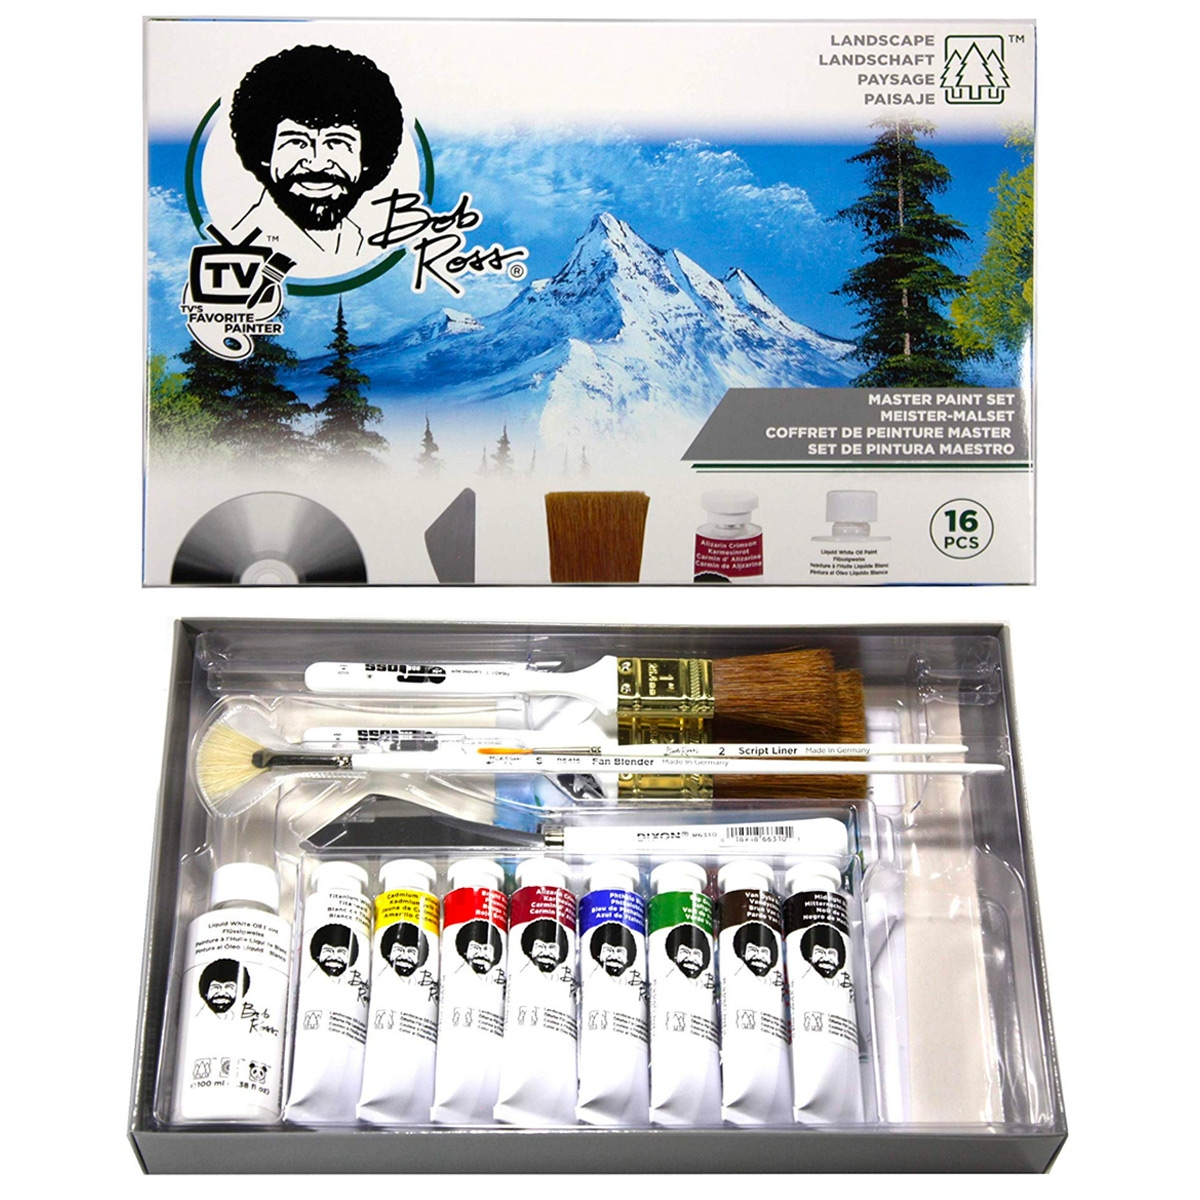 Oil Painting Master Paint Set